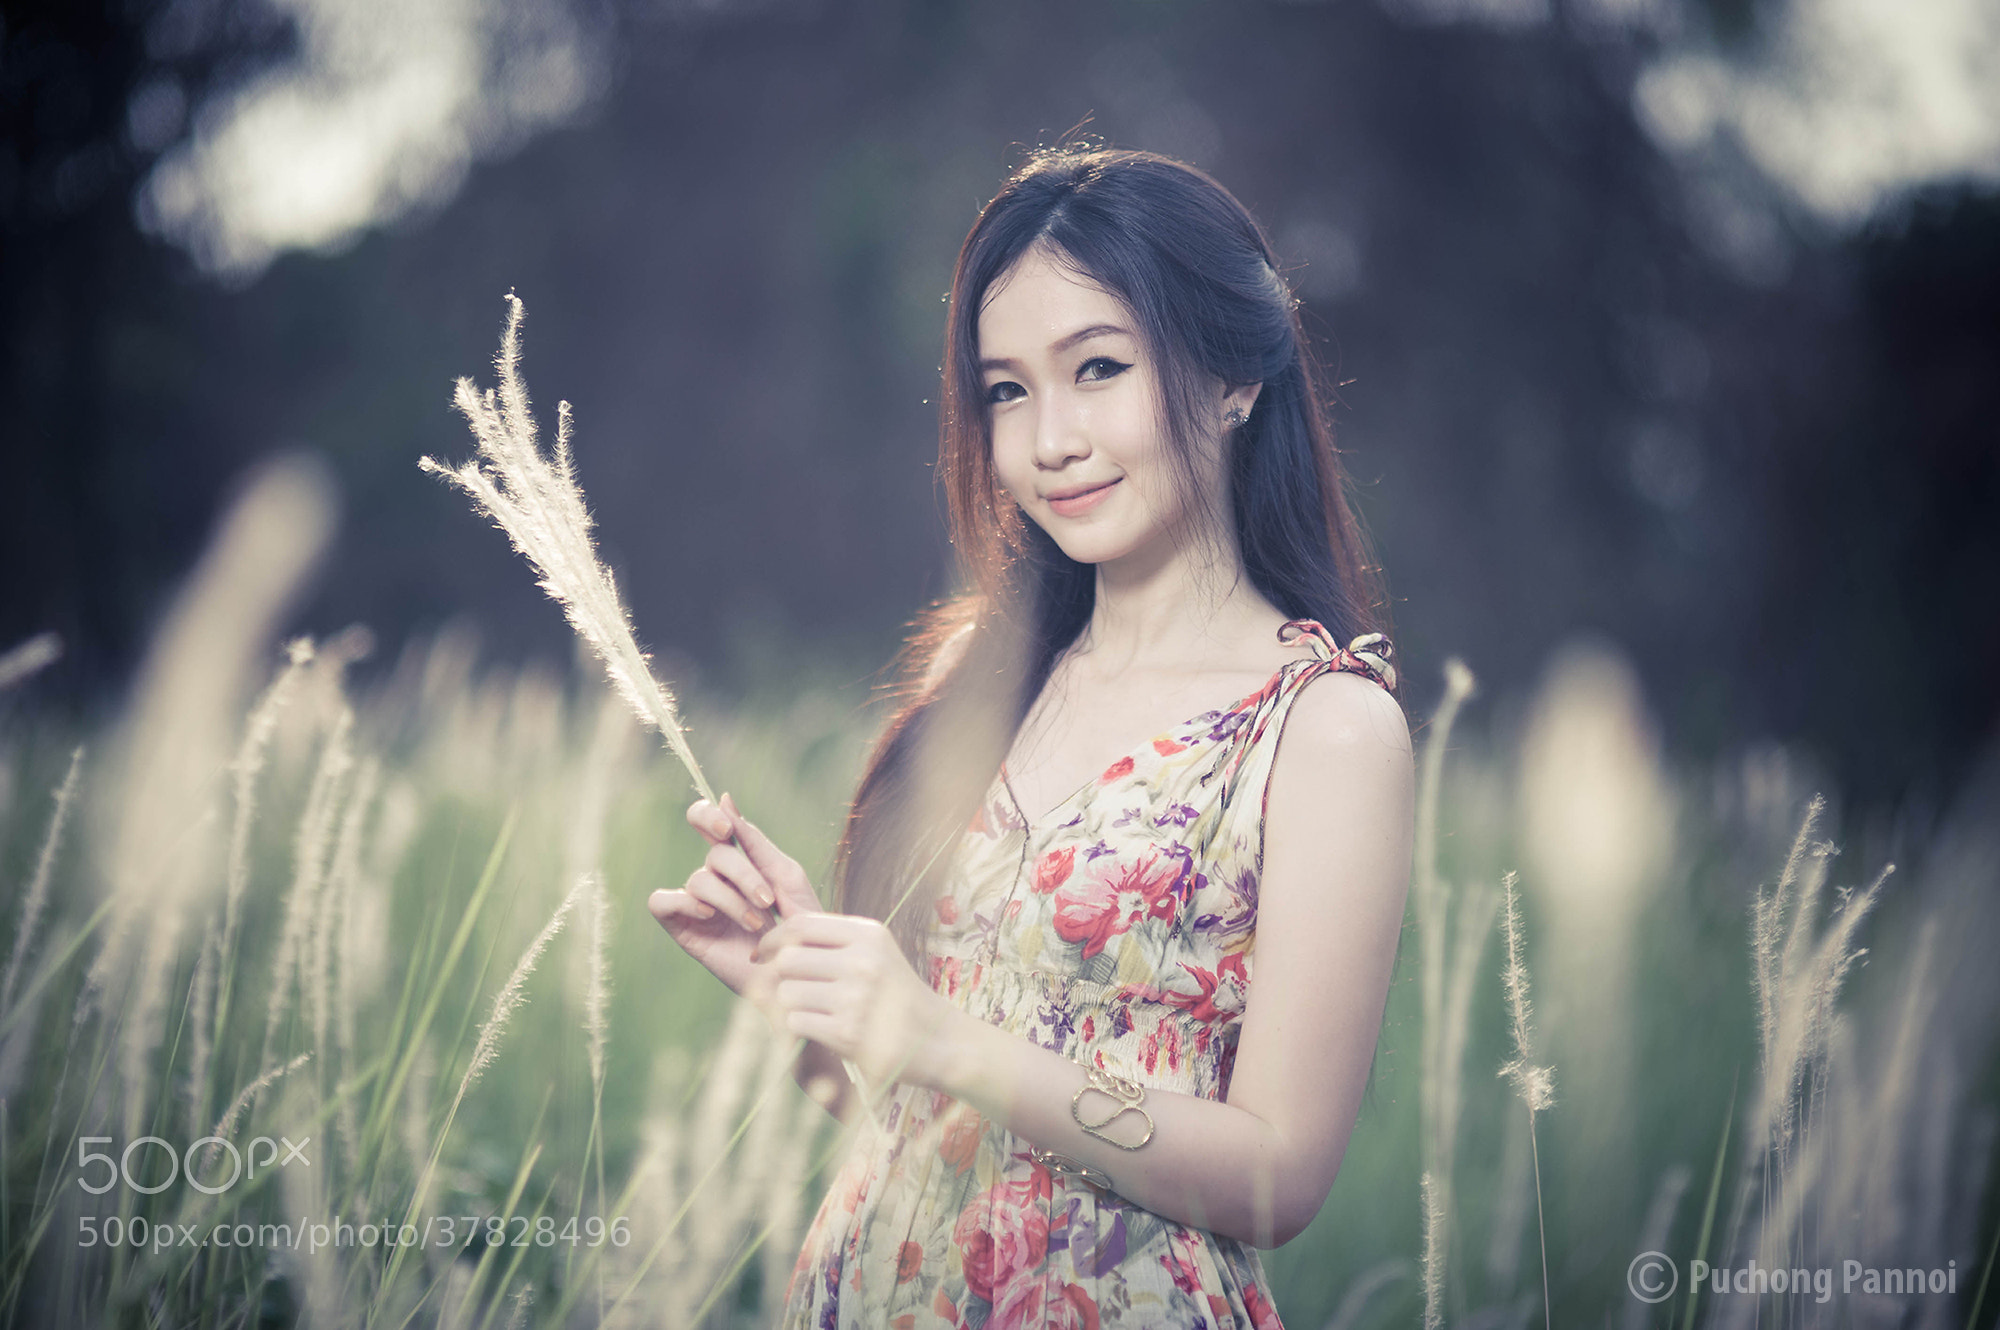 Photograph The secret garden. by Puchong Pannoi on 500px